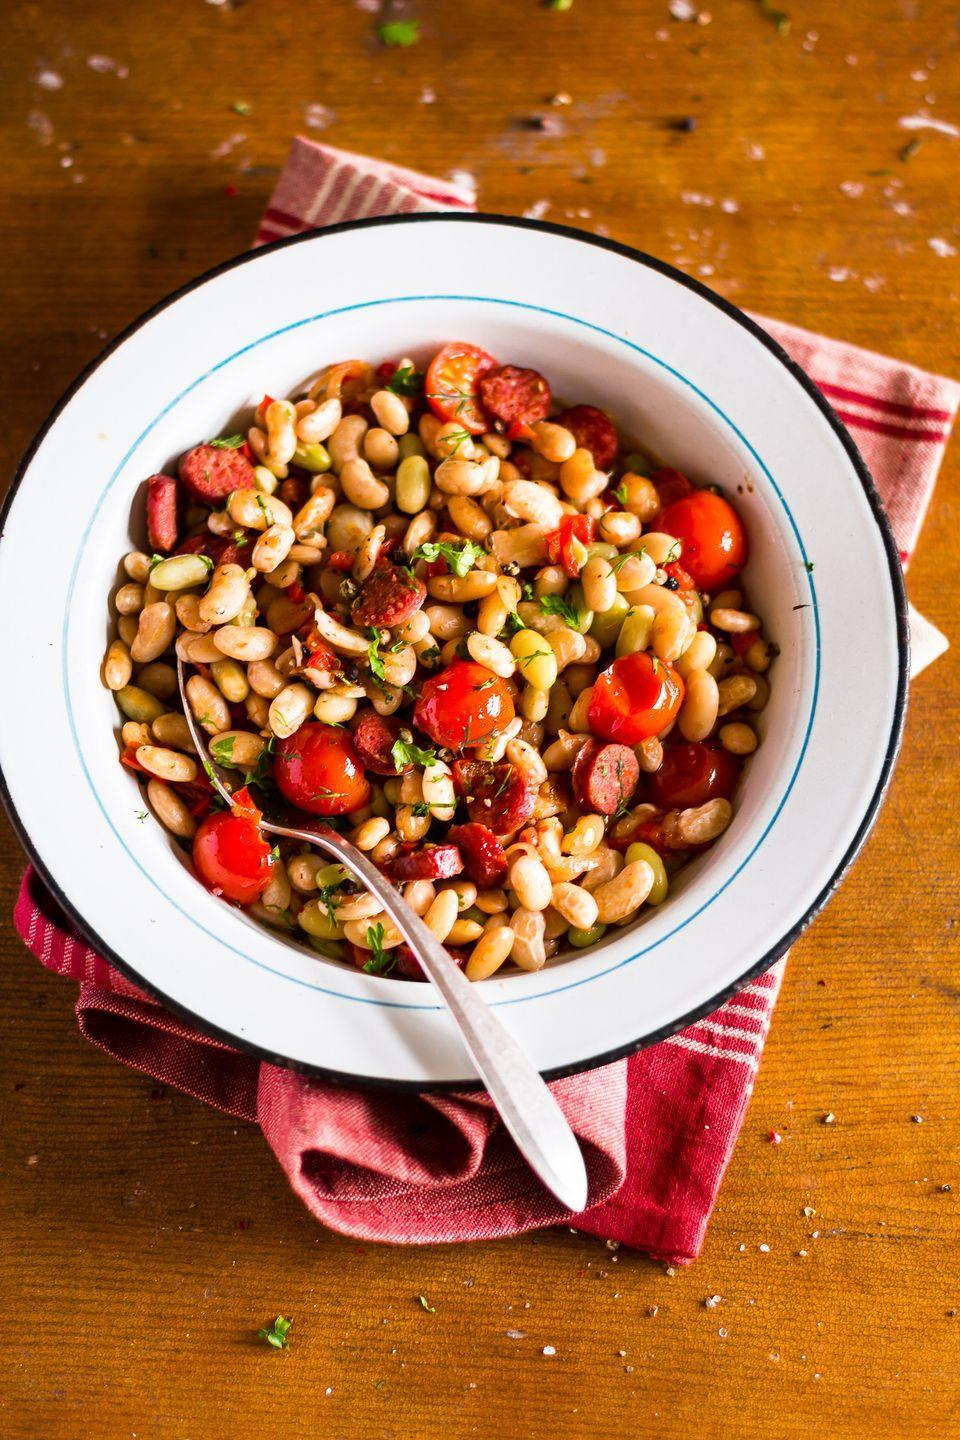 """<p>That liquid your canned beans and veggies are swimming in is mostly salt and starch. A strain followed by a quick 10-second rinse will remove about 40% of the sodium. Then you can """"add ½ cup to pretty much anything you're eating for lunch or dinner every day,"""" says <a href=""""https://www.thebloatedbellywhisperer.com/"""" rel=""""nofollow noopener"""" target=""""_blank"""" data-ylk=""""slk:Tamara Duker Freuman, R.D."""" class=""""link rapid-noclick-resp"""">Tamara Duker Freuman, R.D.</a>, author of <em>The Bloated Belly Whisperer</em>. Fold into sauces and salads, add to veggie side dishes, mix with ground meat, and more. """"Eating beans/legumes every day is the single common dietary factor among people who live the longest, most disease-free lives,"""" says Duker Freuman.</p>"""